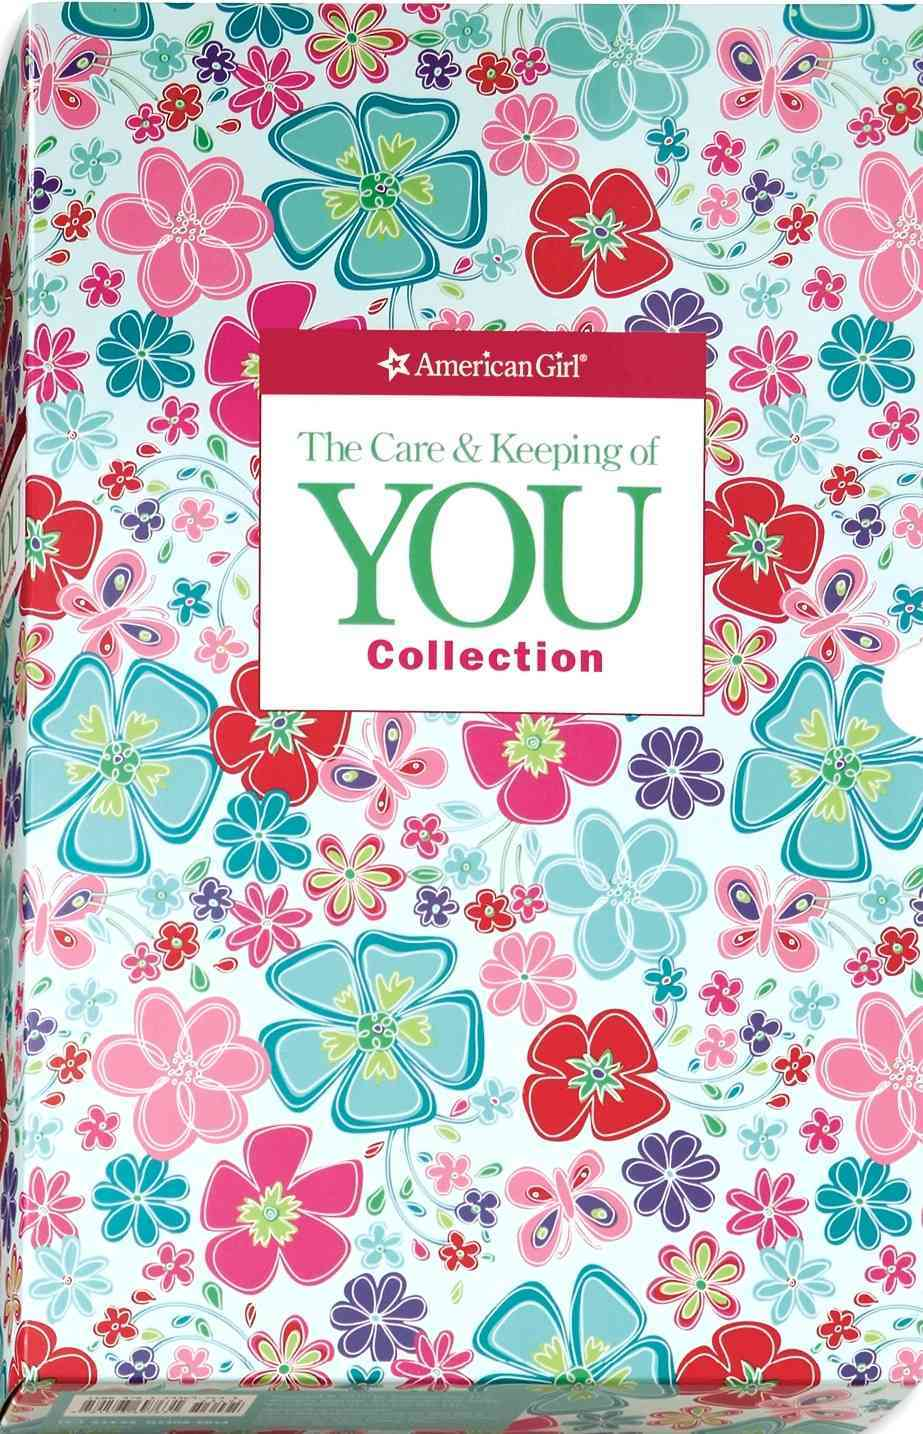 The Care & Keeping of You Collection